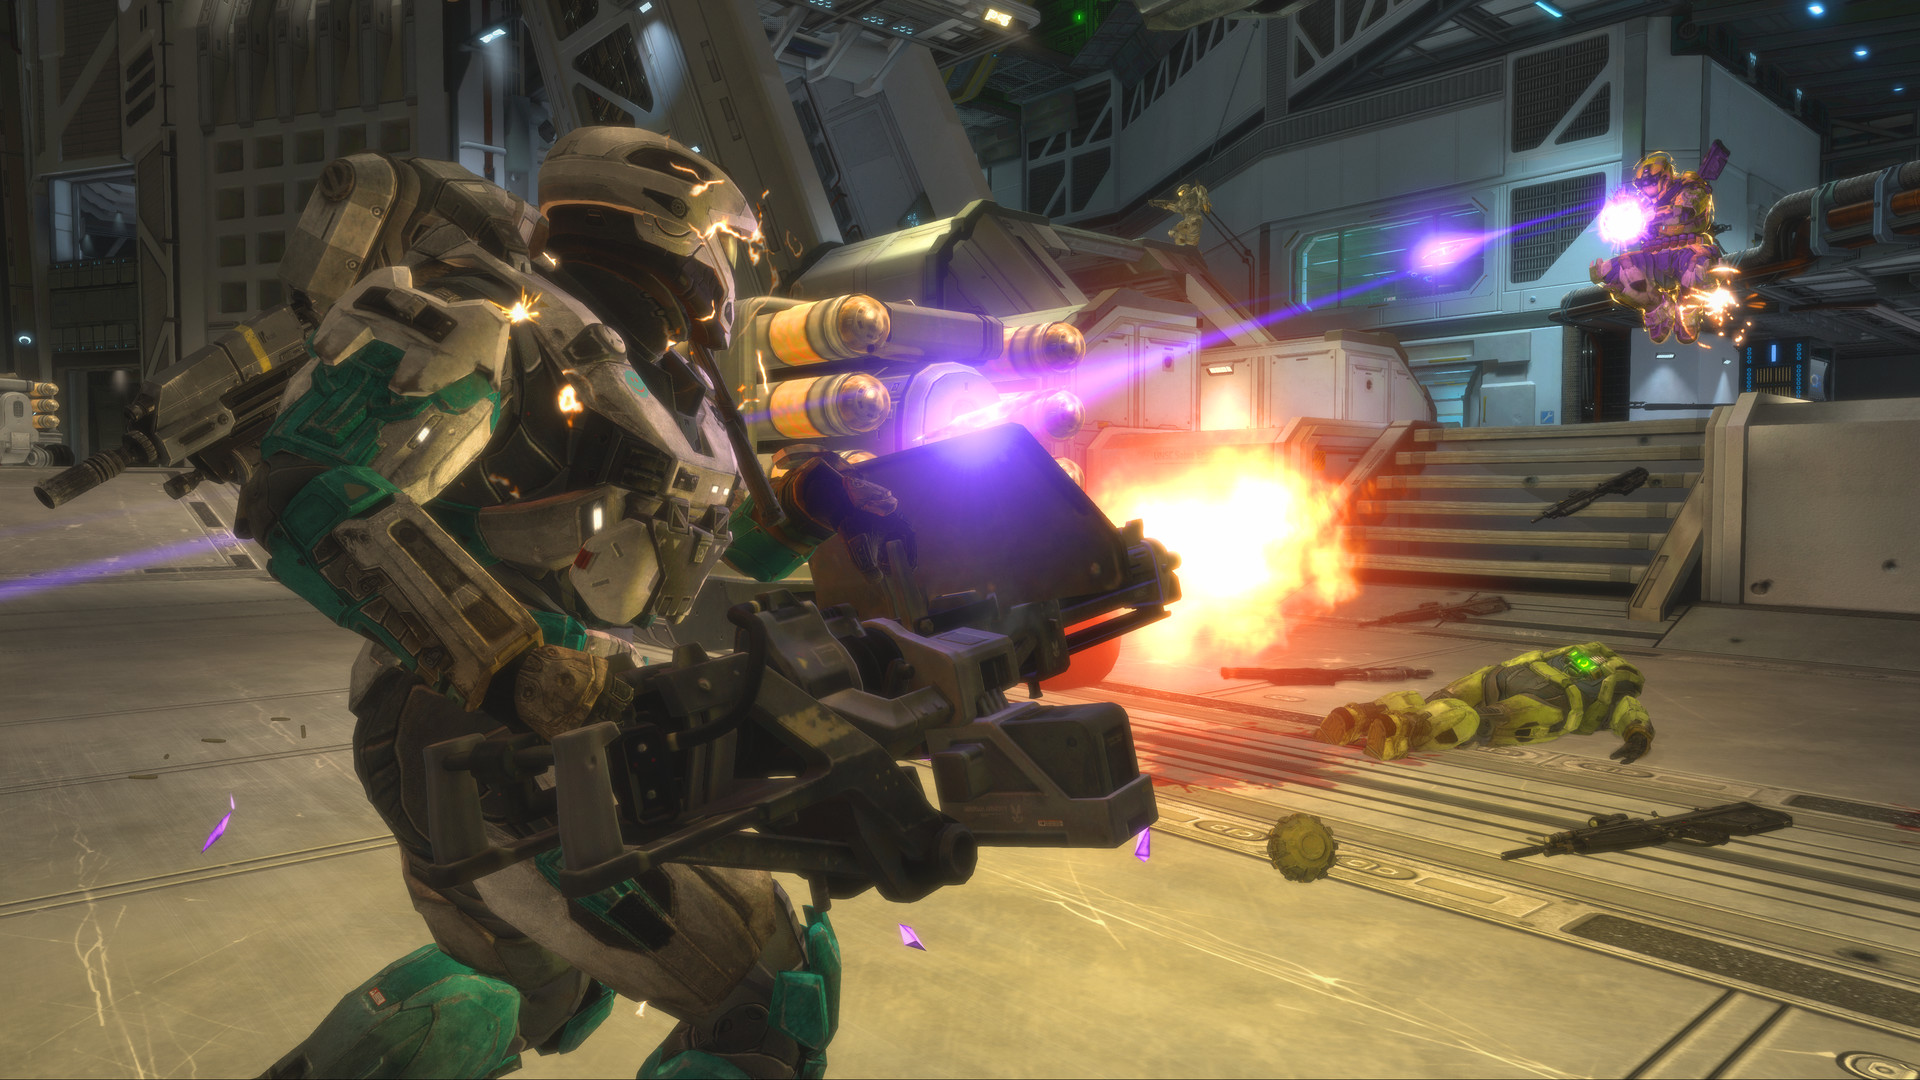 halo-the-master-chief-collection-pc-screenshot-02